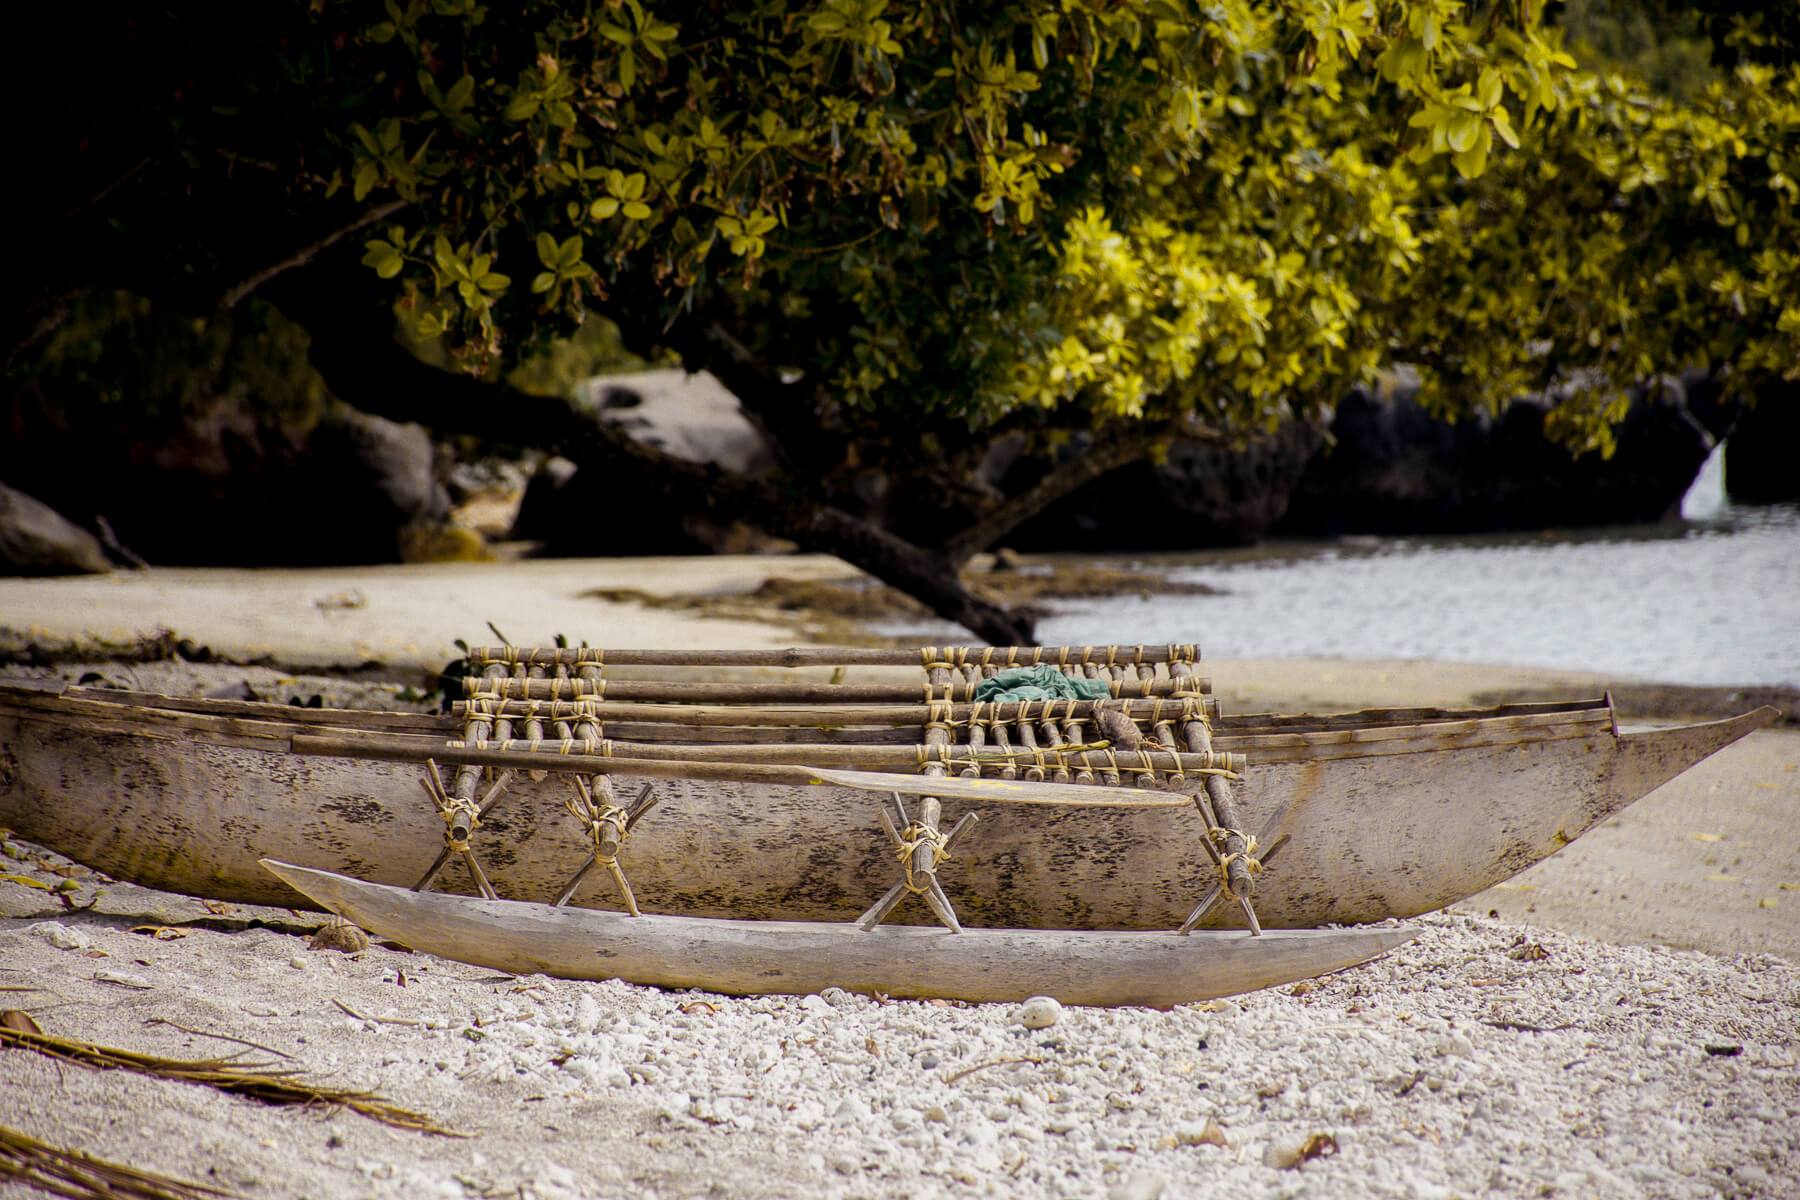 An old style canoe on the sandy beach